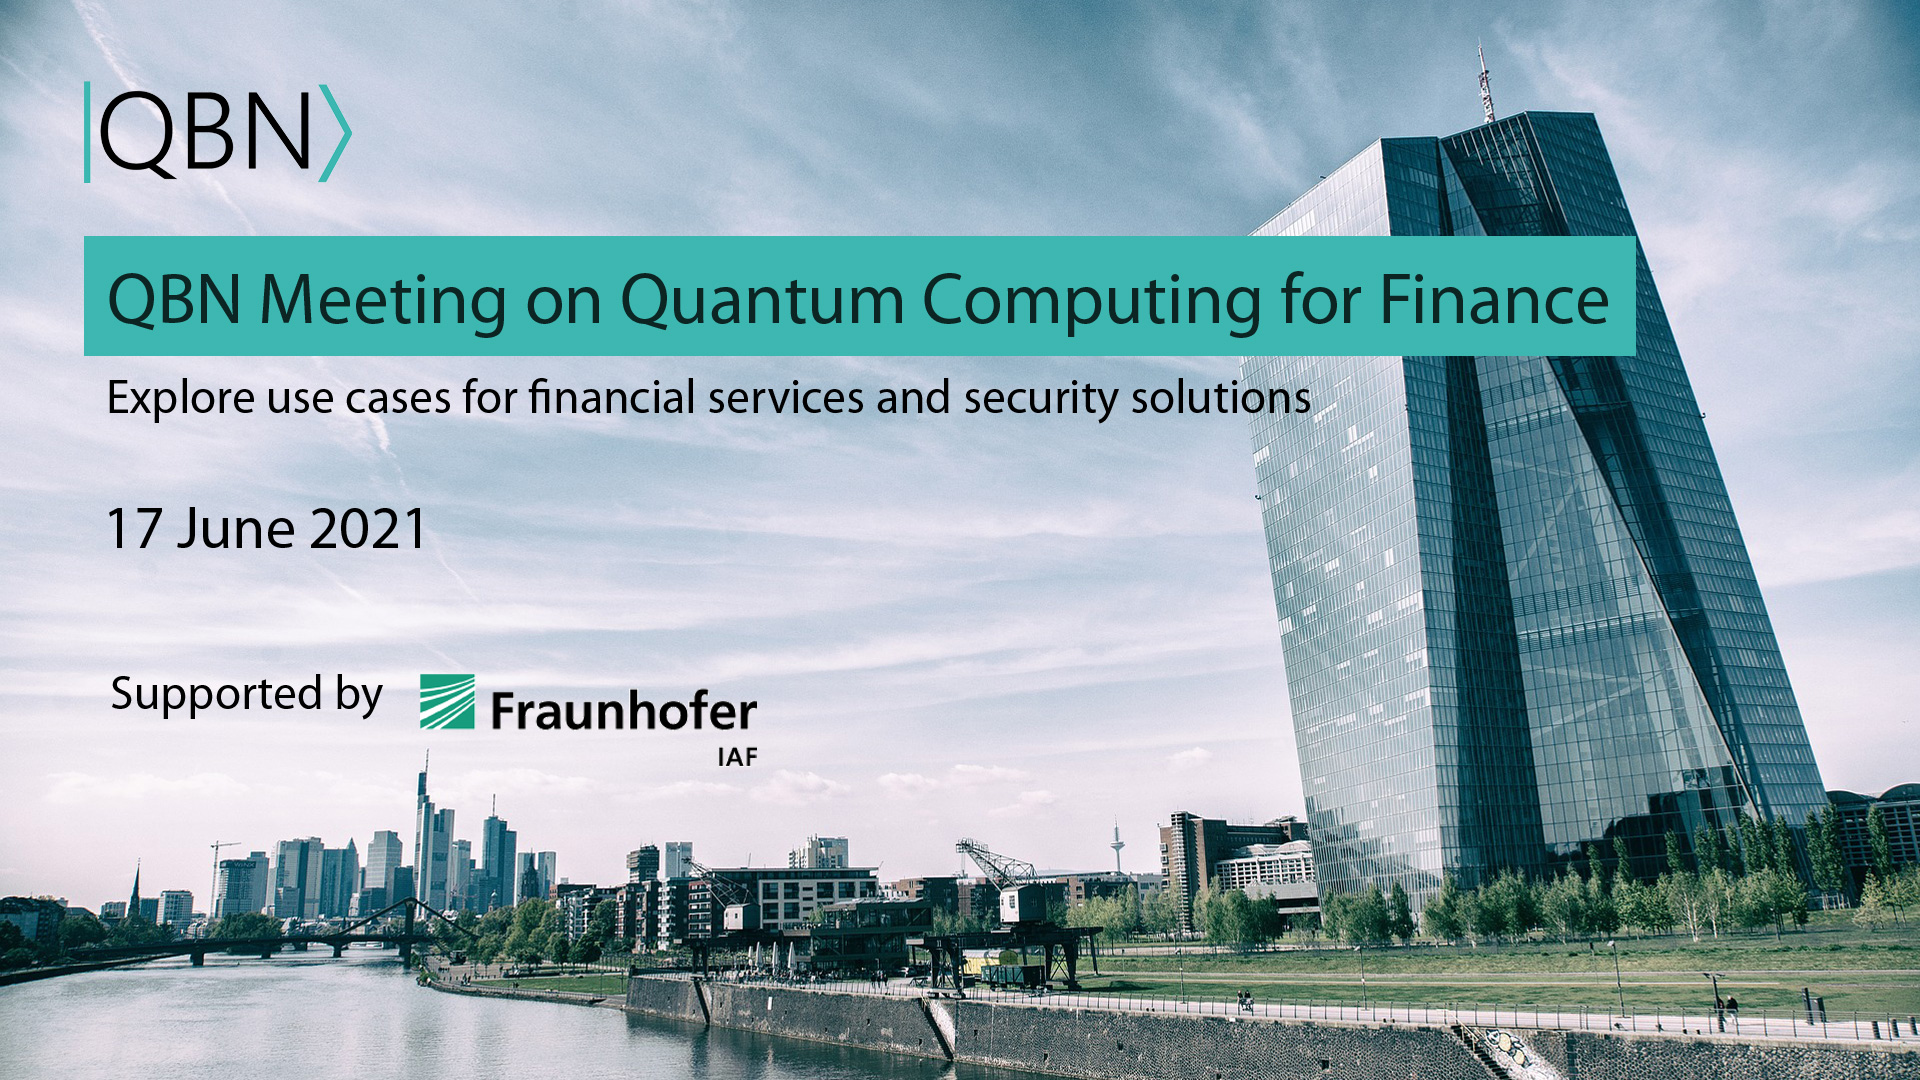 QBN Meeting on Quantum Computing for Finance